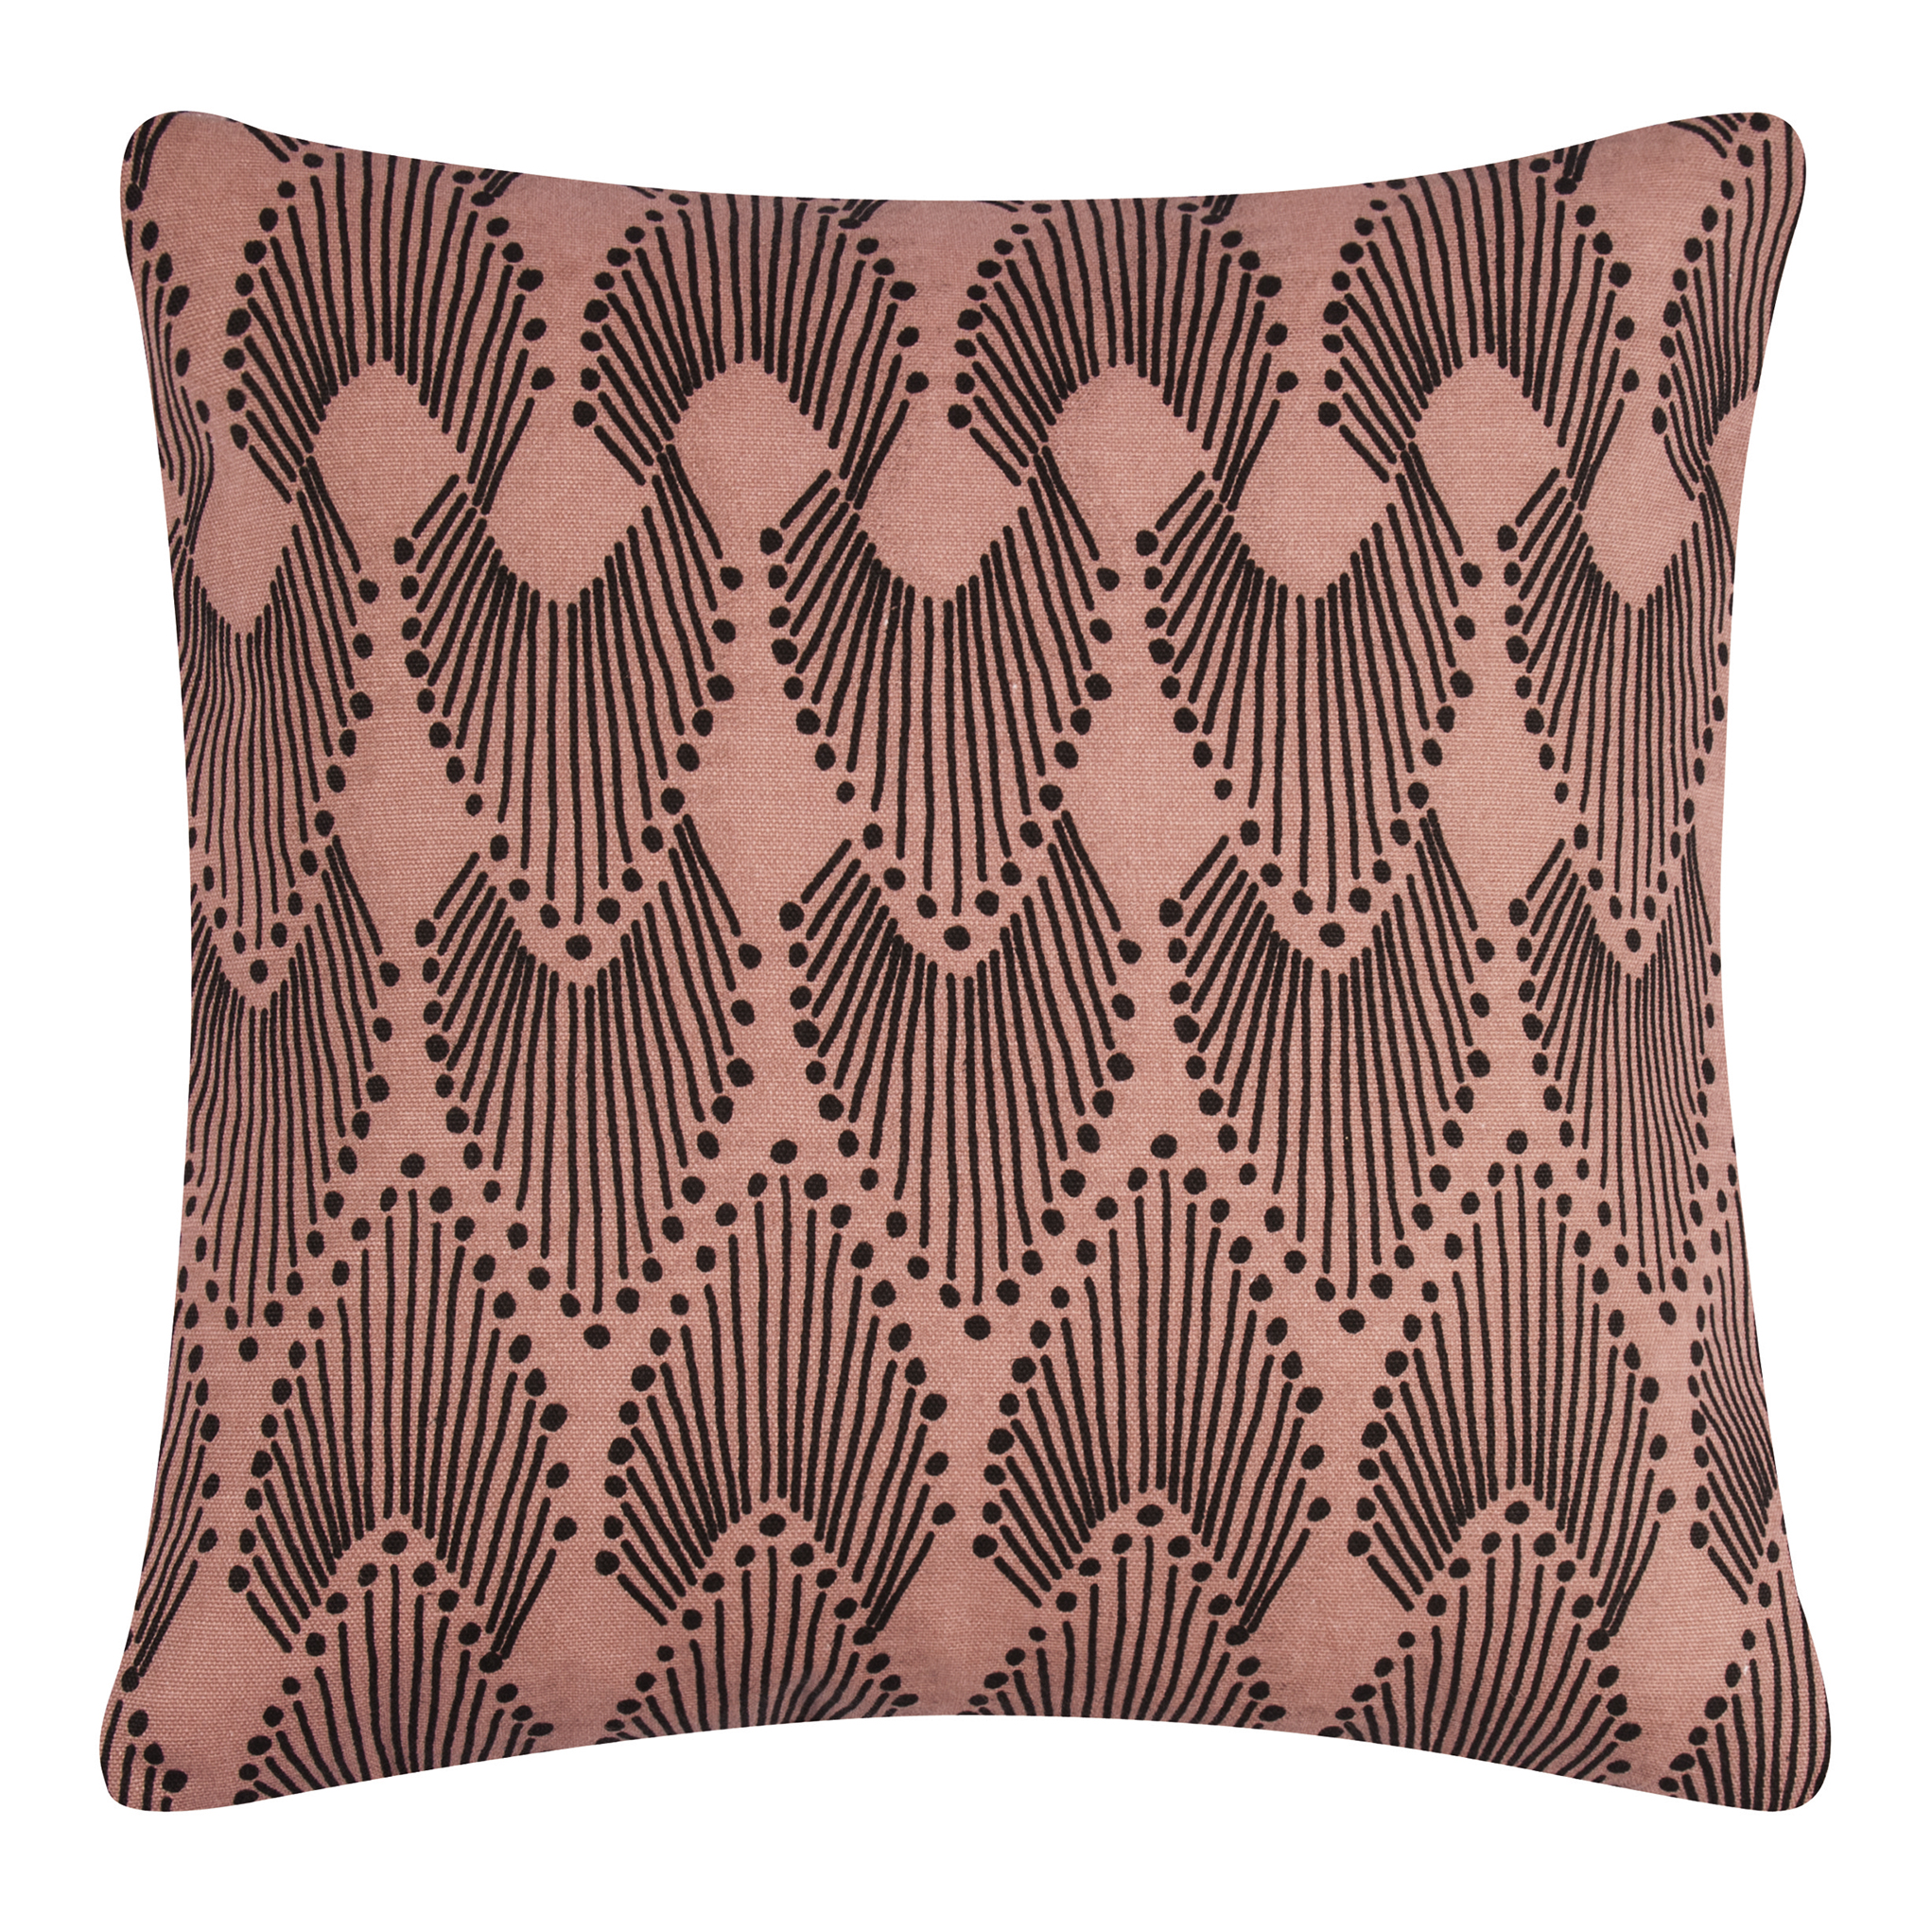 Kissenhülle - Flair Dusty Pink 45x45 - PAD home design